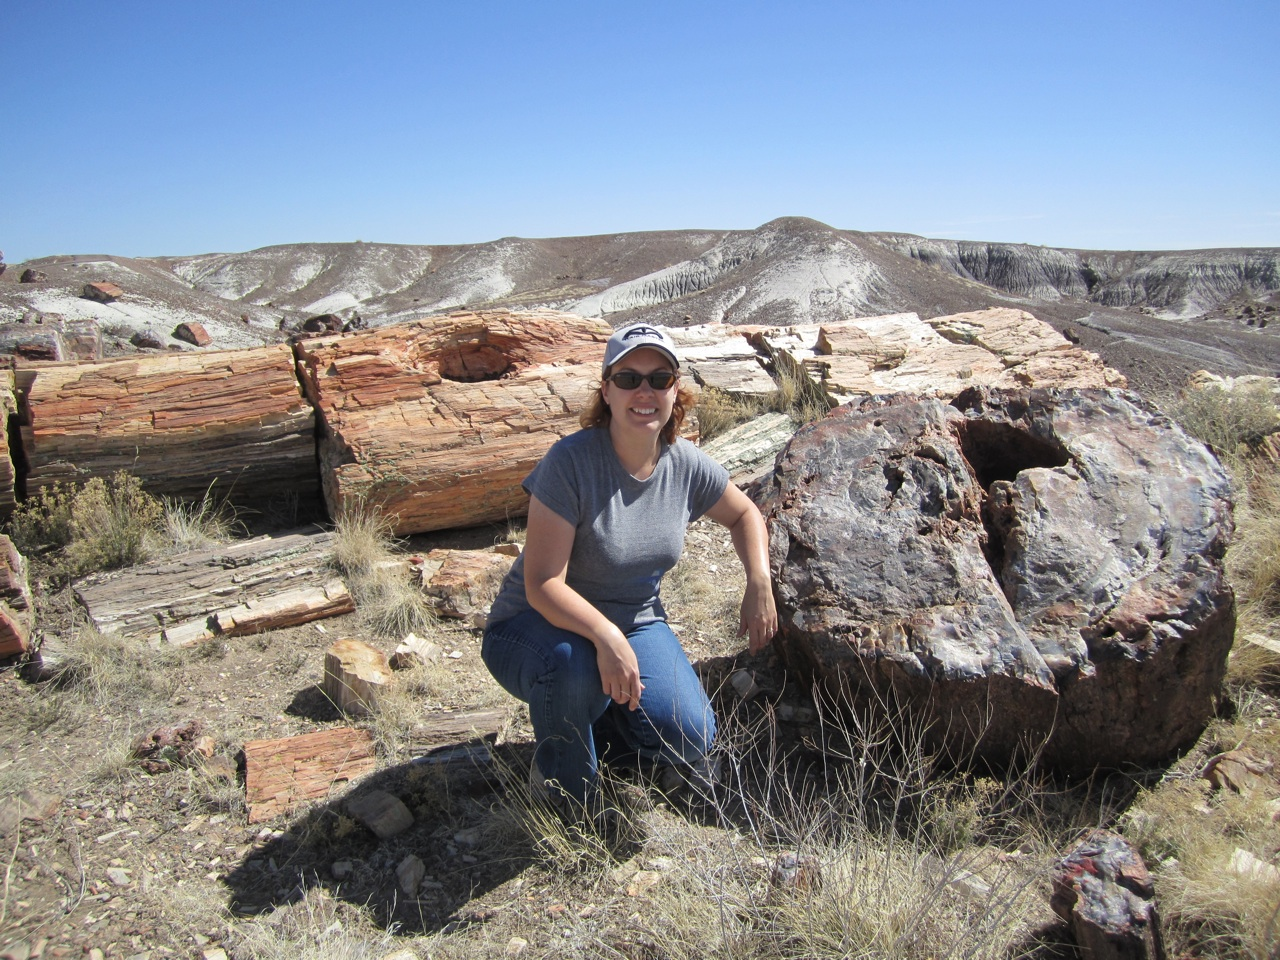 Brenda And A Petrified Log With A Tree In The Background